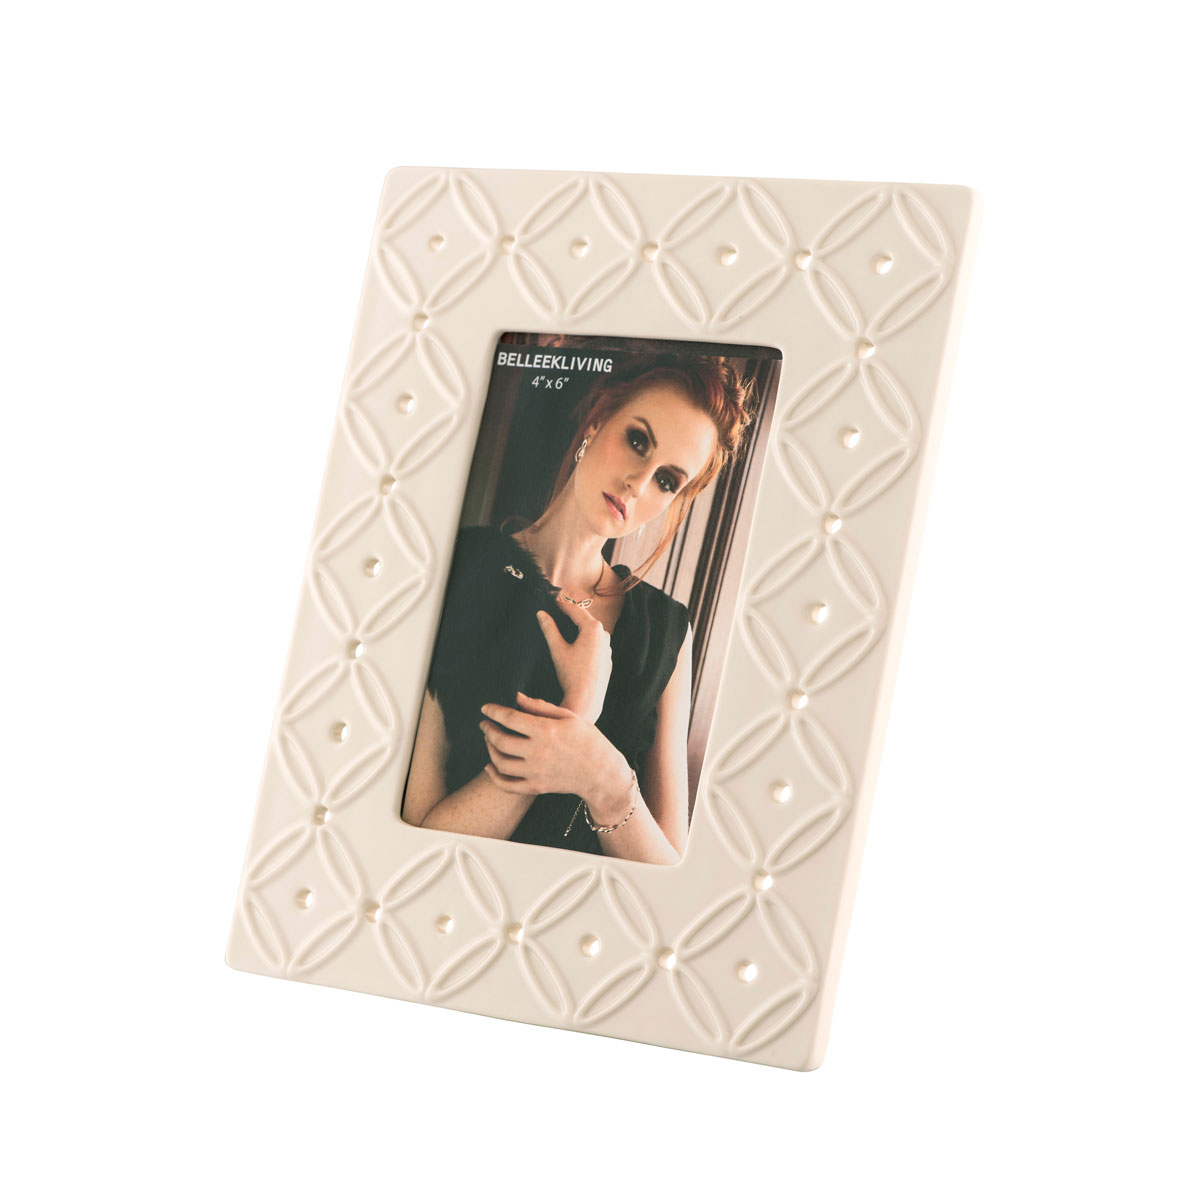 """Belleek Living Inish 4"""" x 6"""" Picture Frame"""